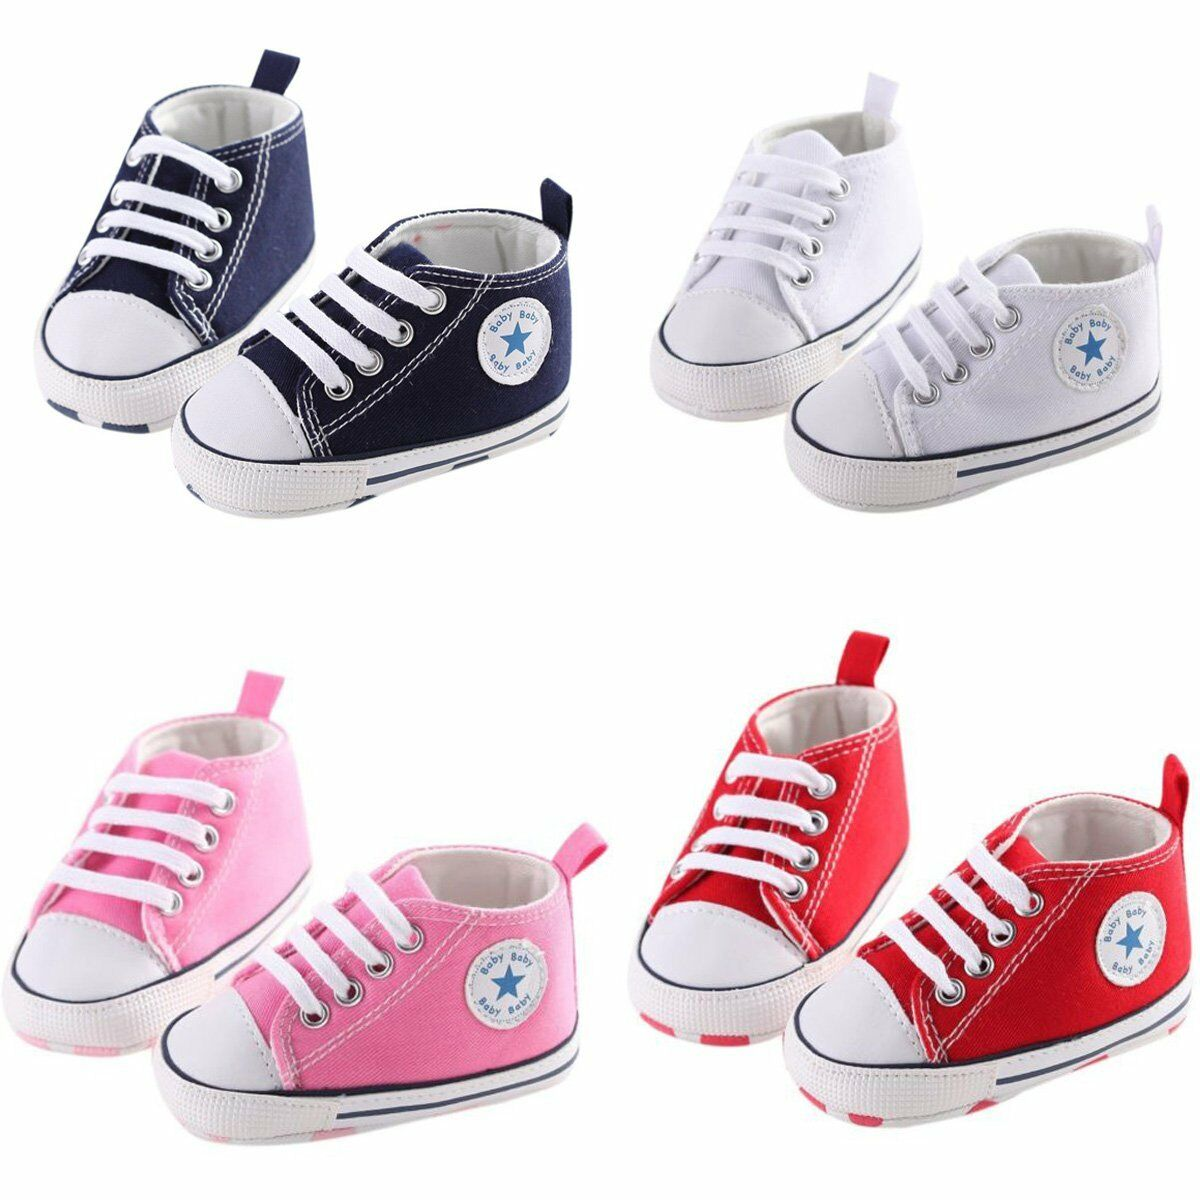 Toddler Boy Shoes Sneaker Sole 0-18 Months Soft Crib Girl Ne